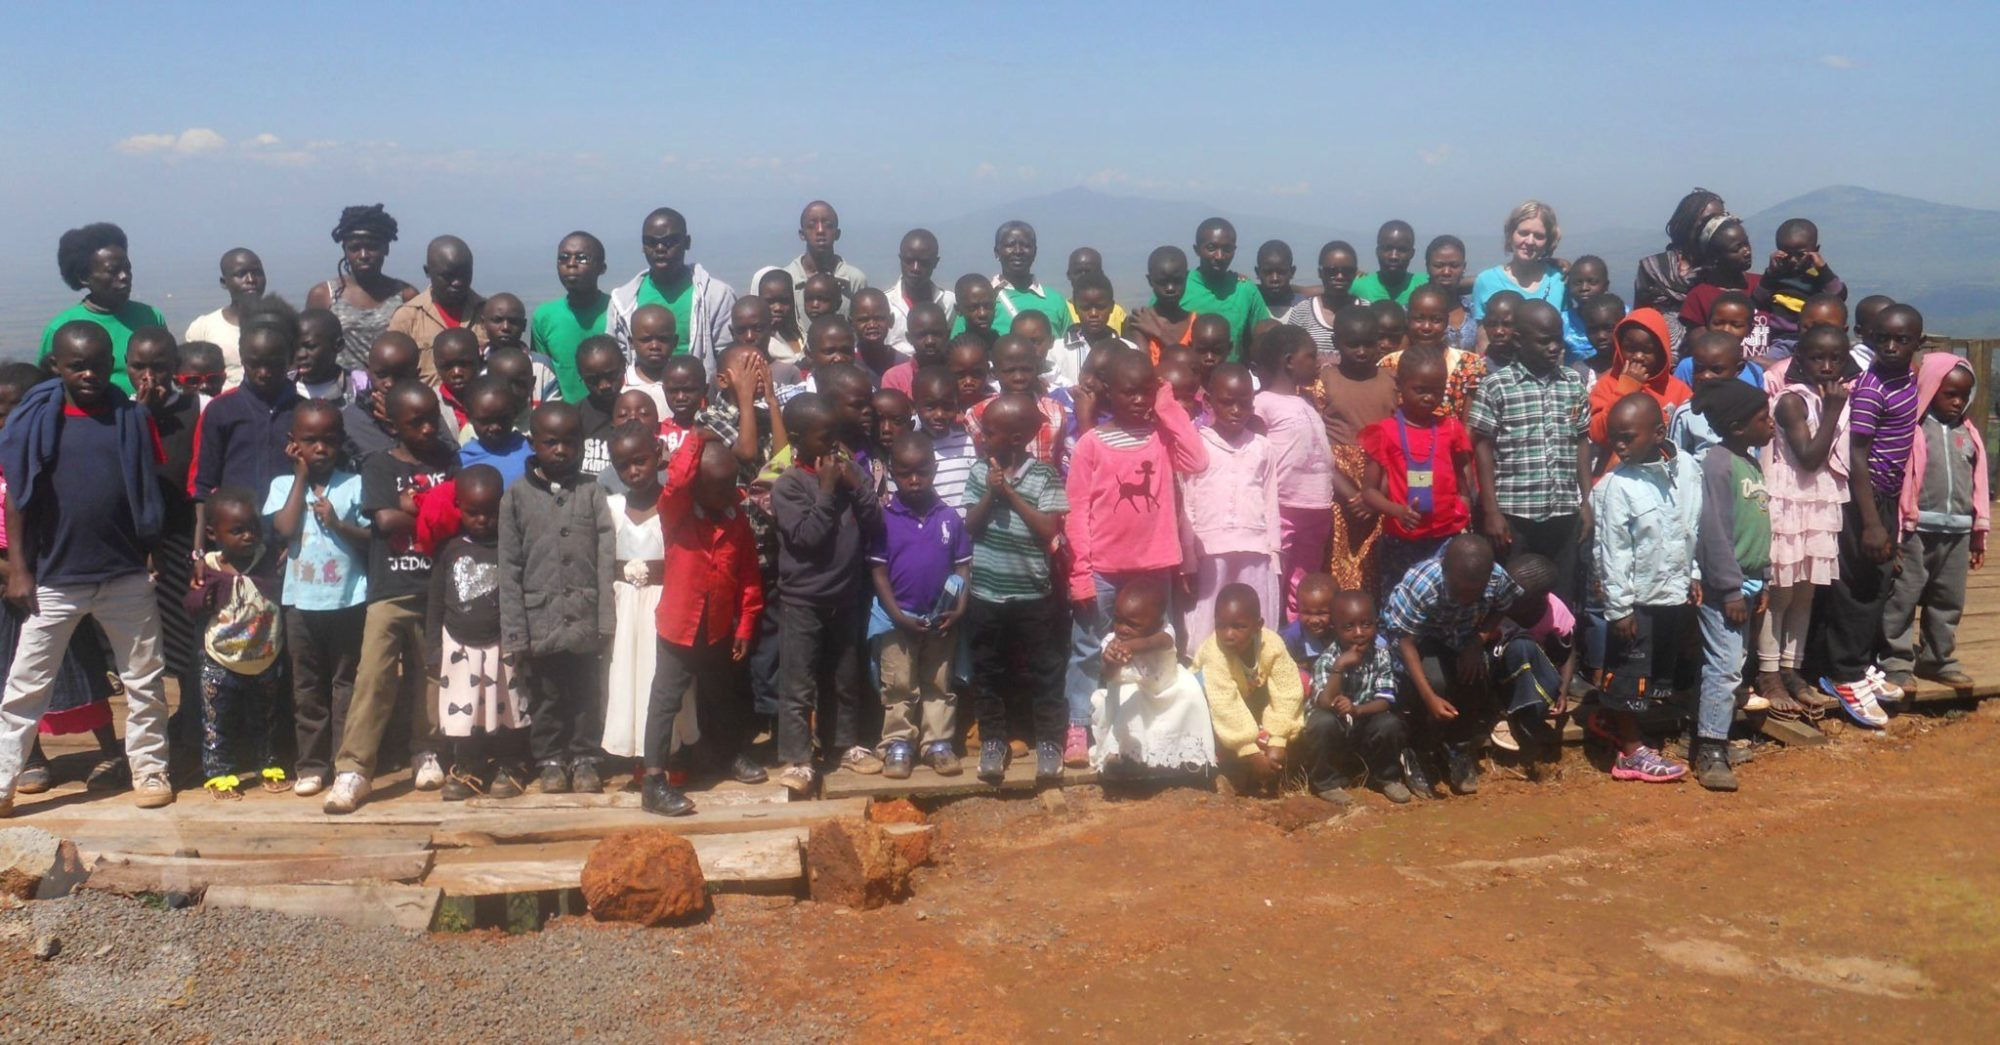 The children of Future Stars at a Rift Valley Viewpoint